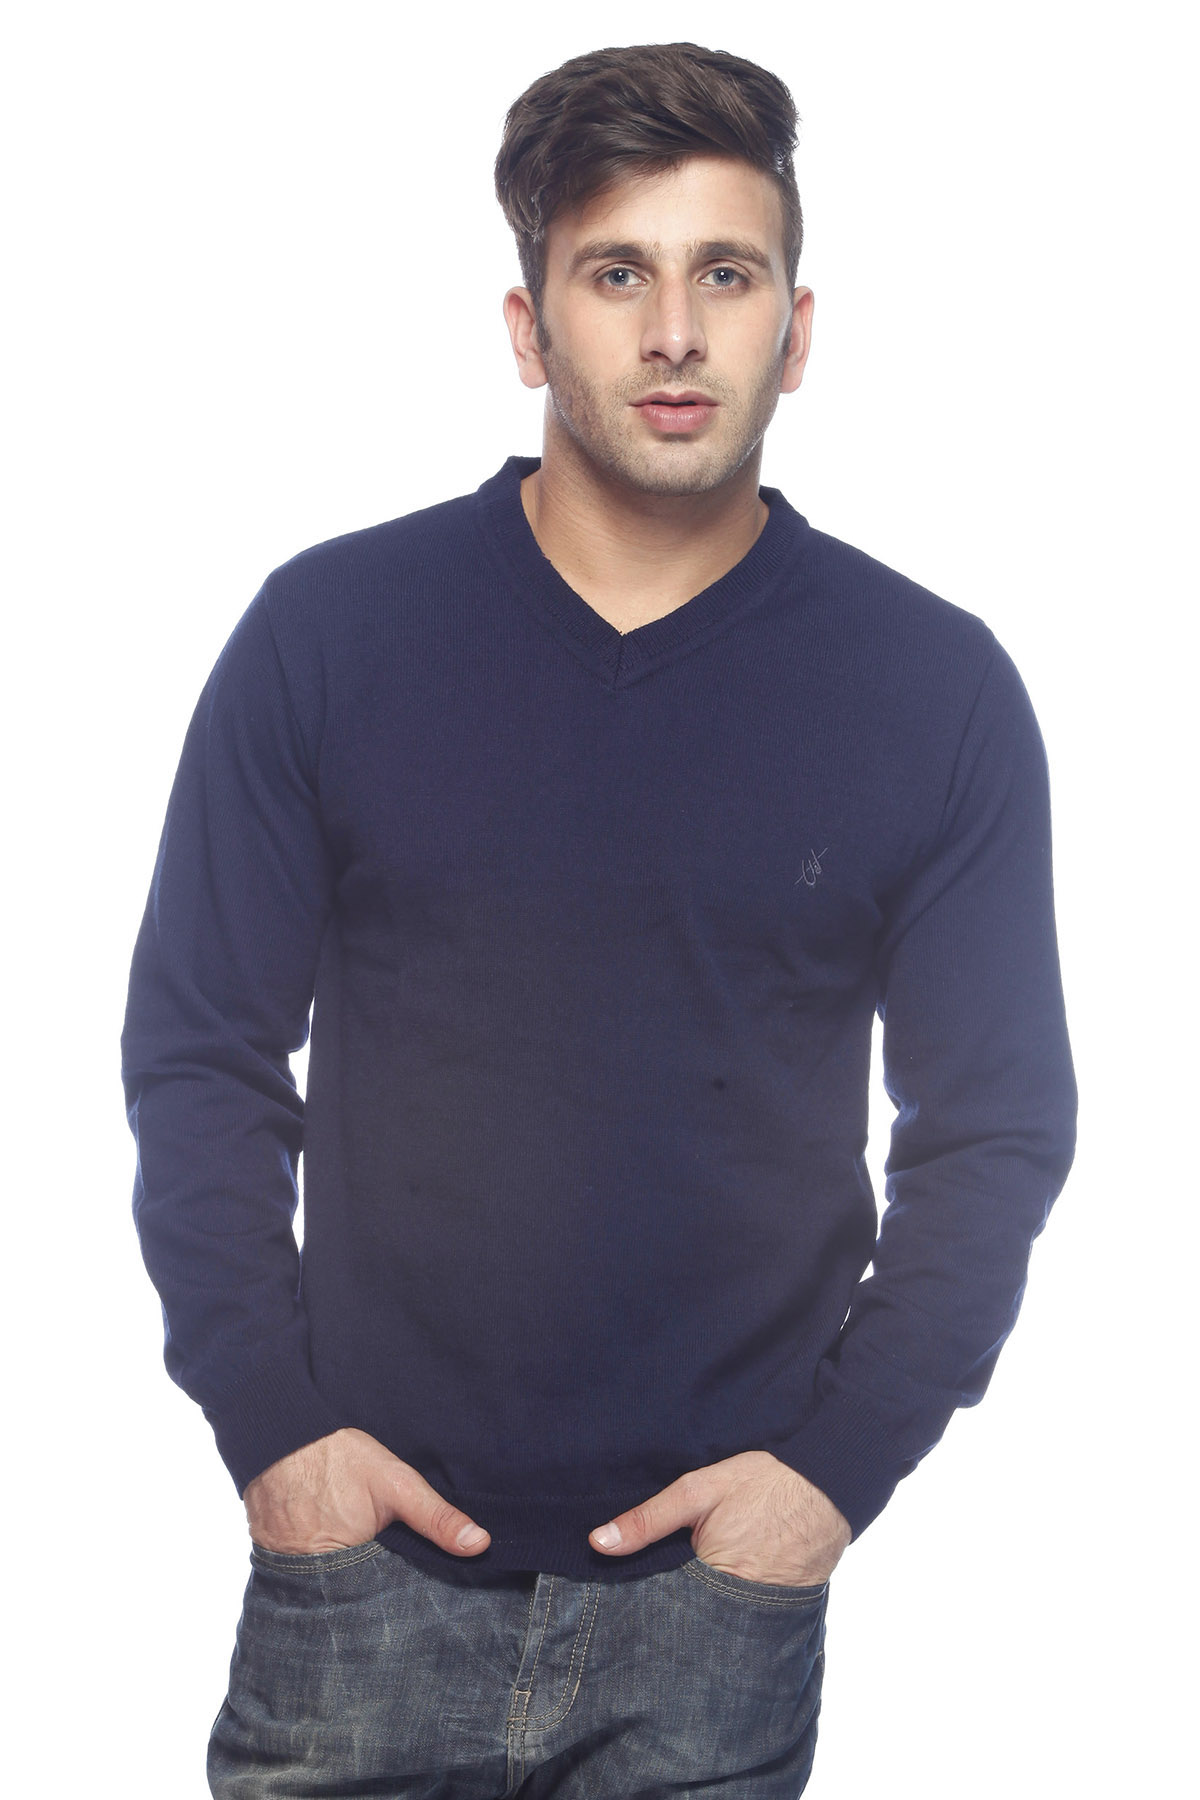 DS Navy Stylish Woolen V-Neck Sweater